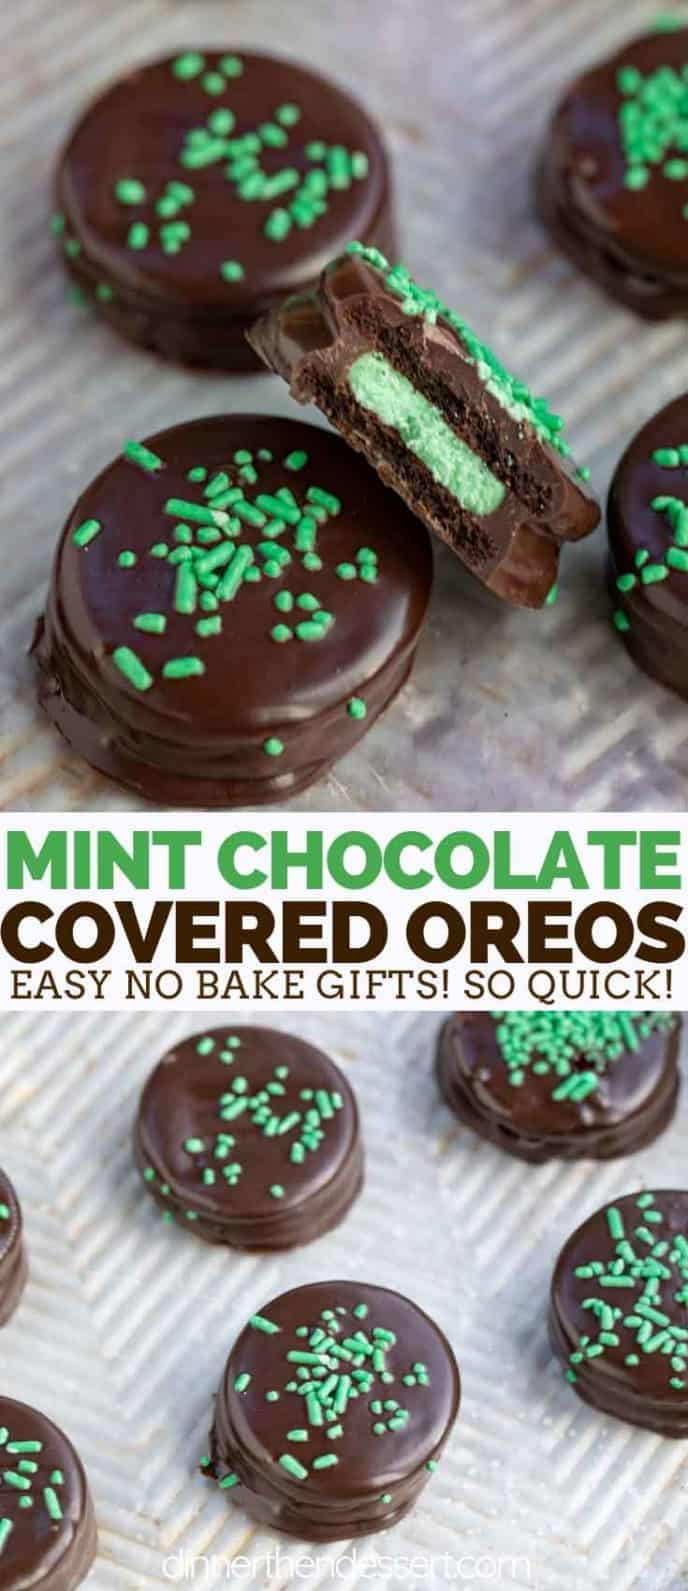 Chocolate Mint Grasshopper Oreos